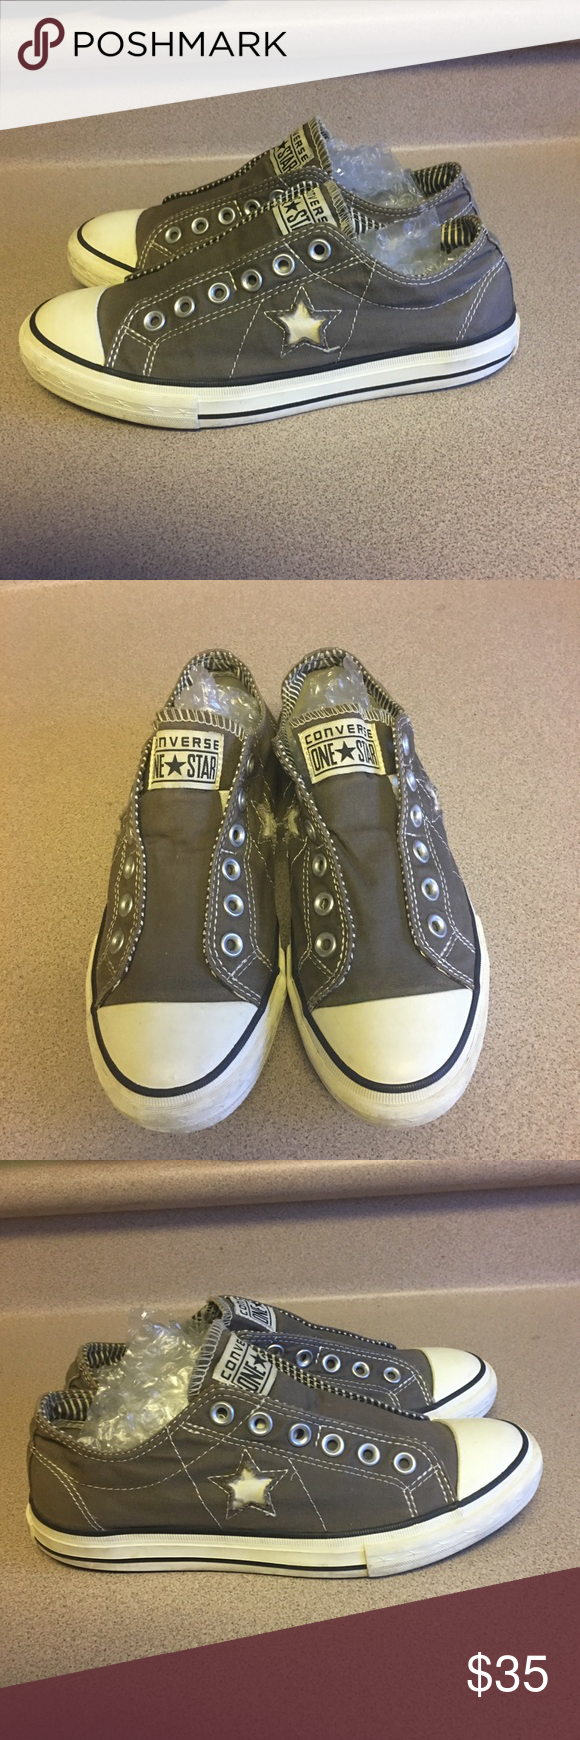 fc8a9ddaa75a99 PreOwned Converse One Star No Lace Women 8.5 Gray PreOwned Converse One  Star No Lace Women s Size 8.5 Gray Converse Shoes Sneakers